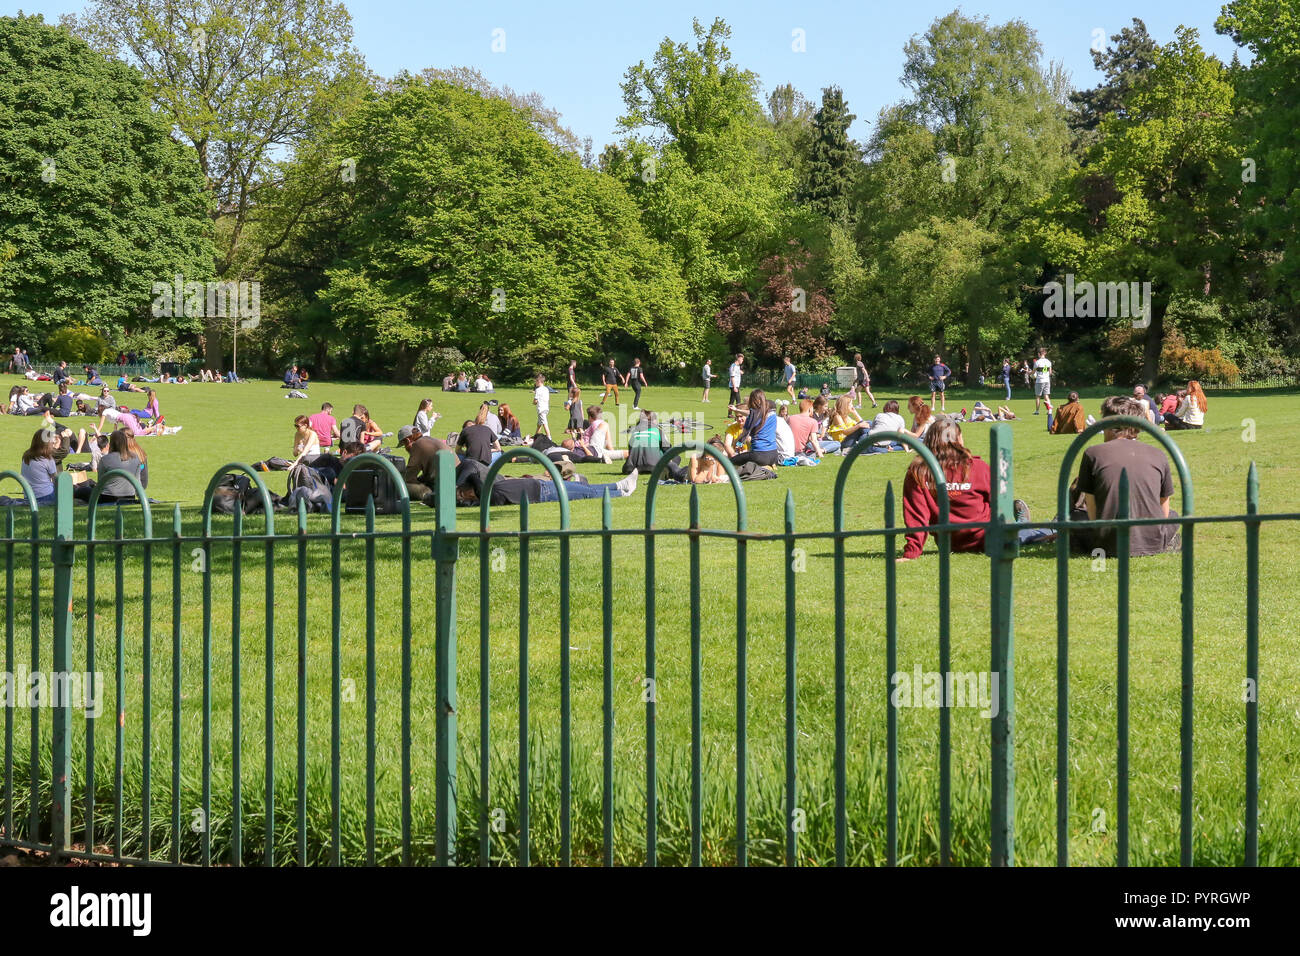 Students and young people relaxing in a Belfast Park on a sunny spring day. Botanic Gardens Belfast. - Stock Image